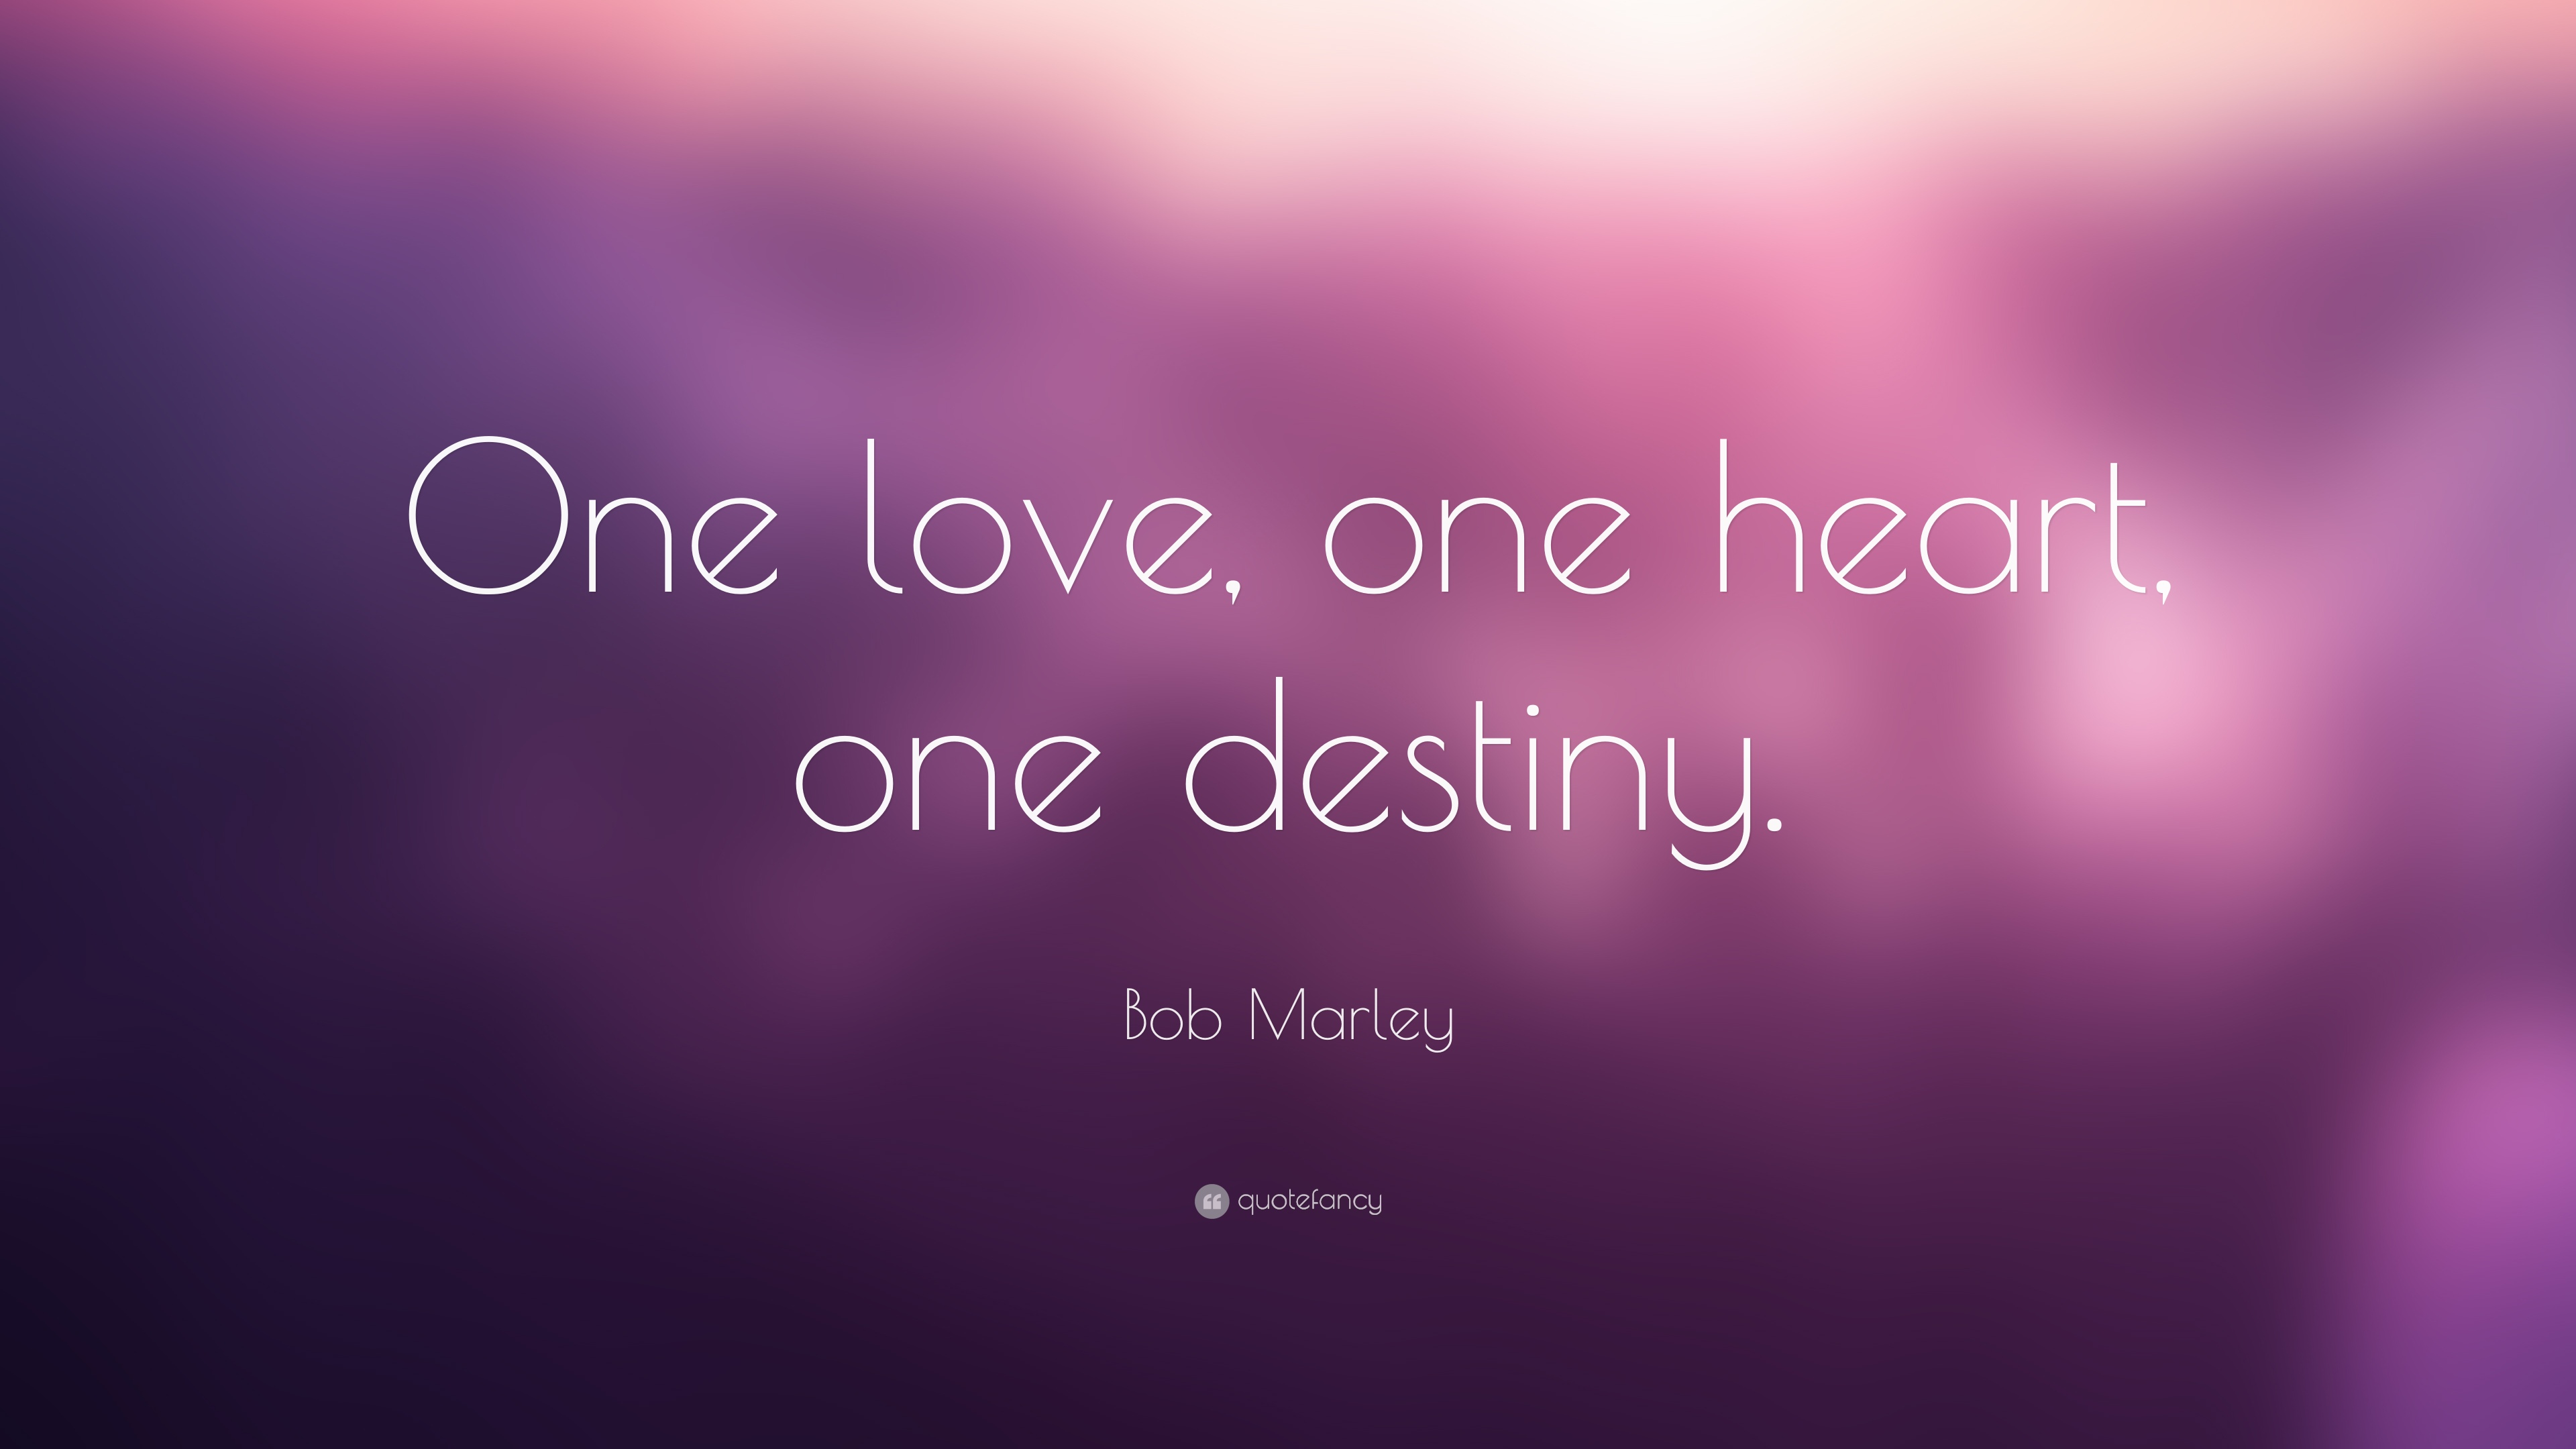 S Love Quotes : Love Quotes (26 wallpapers) - Quotefancy